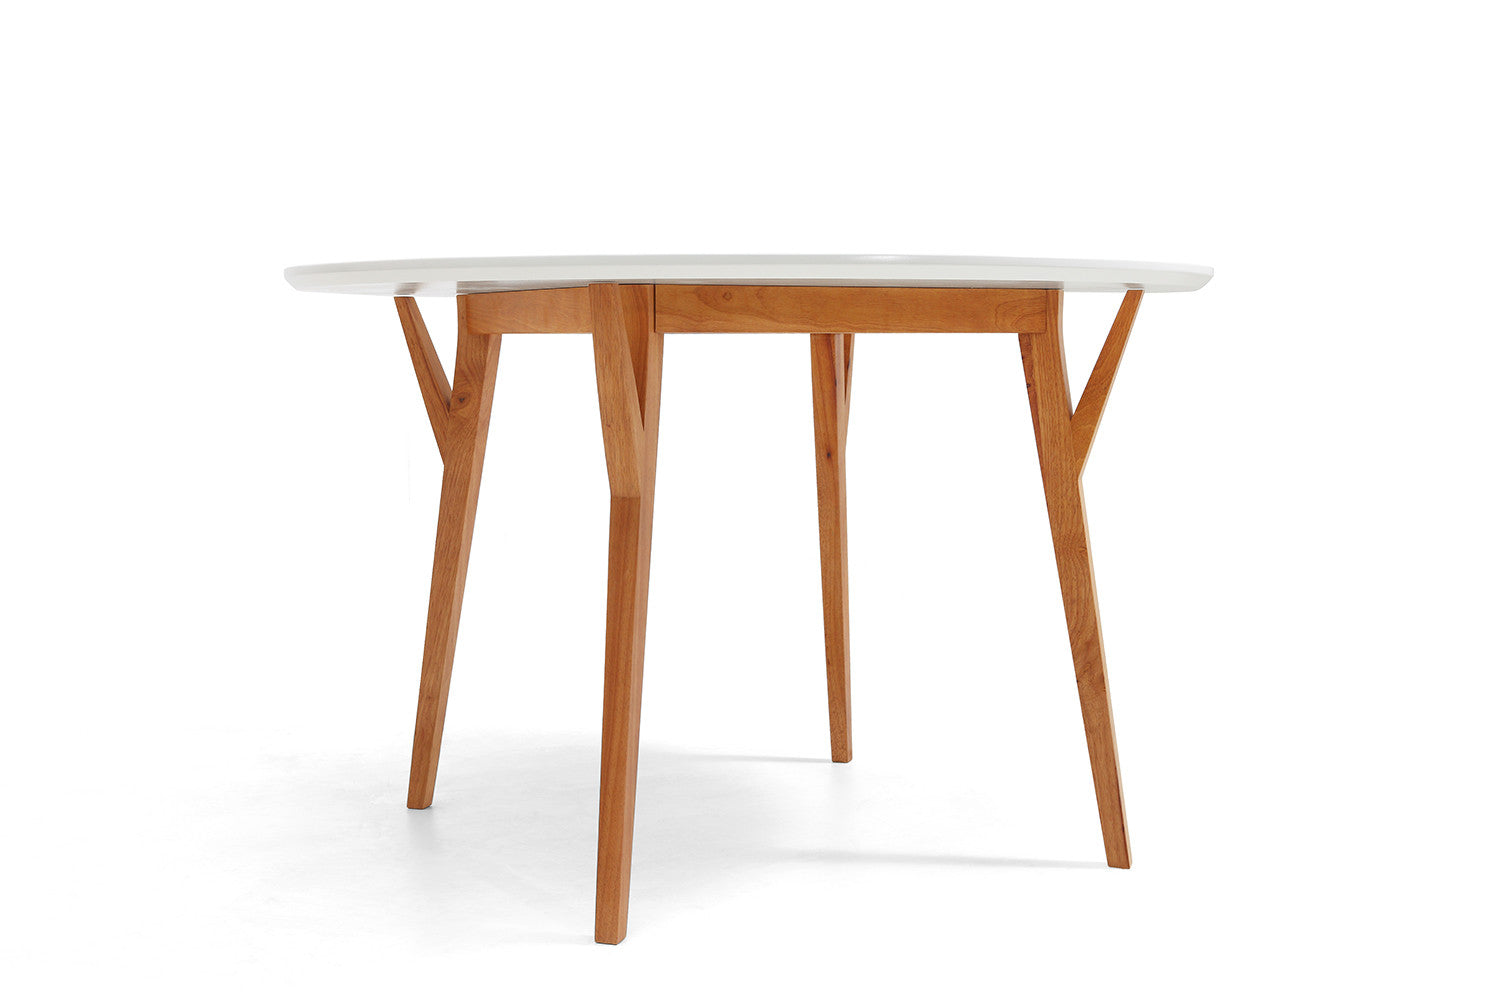 Table de salle manger ronde design scandinave moesa dewarens for Solde table salle a manger